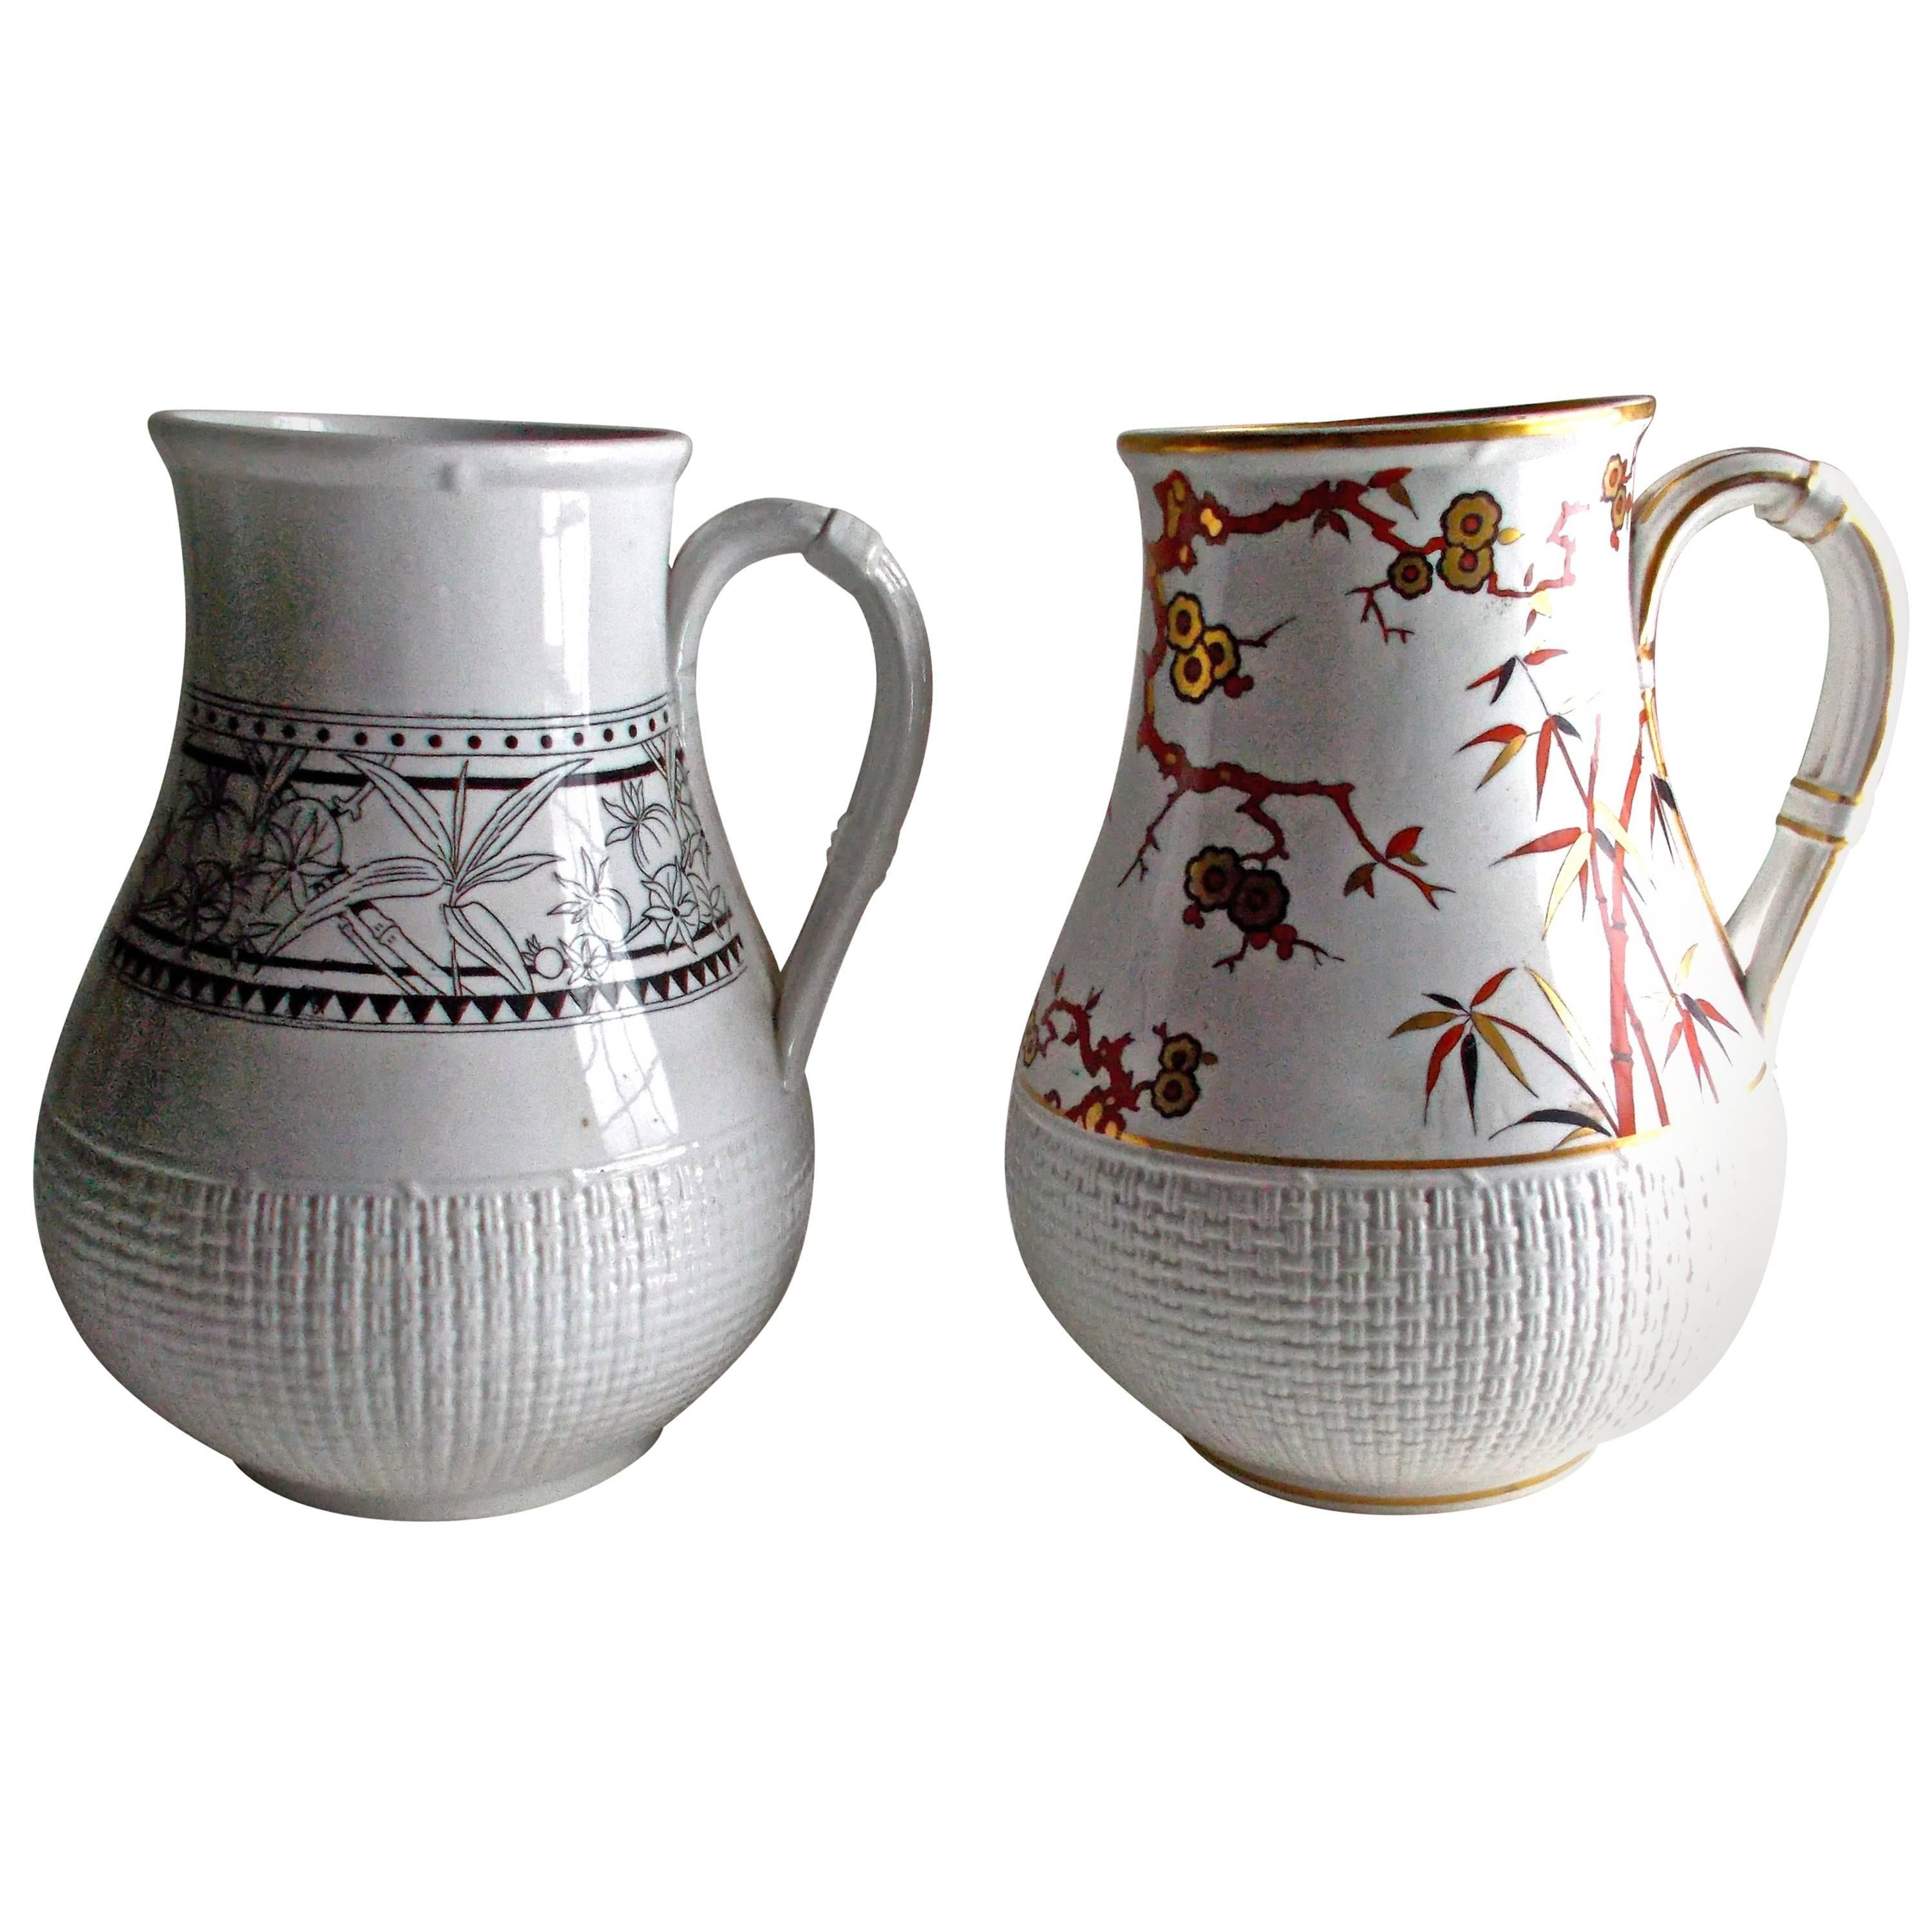 Two Minton's Japonesque Water Pitchers Attributed to Christopher Dresser